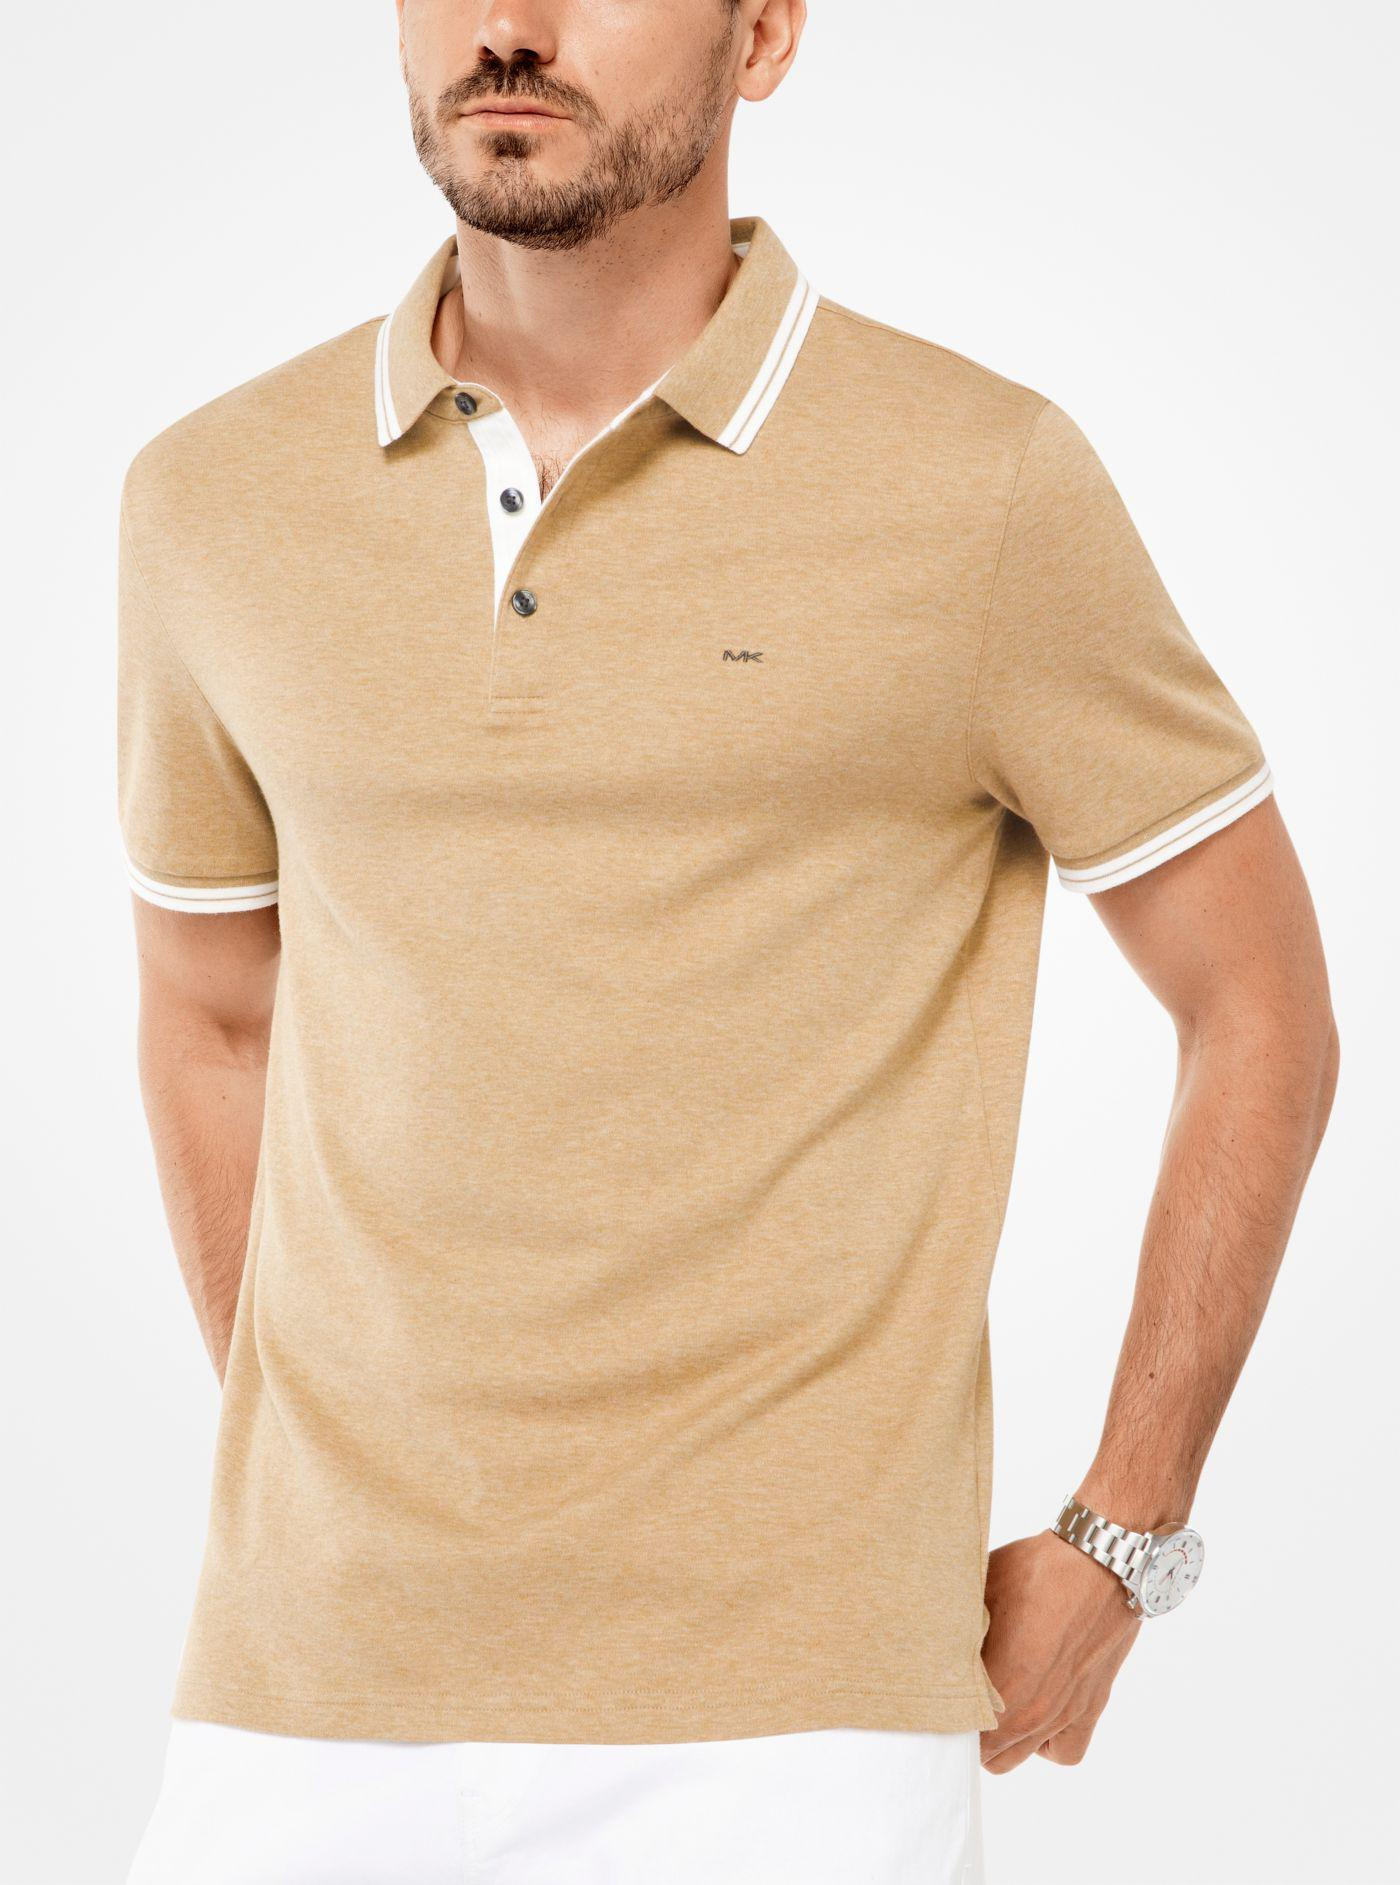 39c6ea7432e8eb Michael Kors Greenwich Cotton Polo Shirt in Natural for Men - Lyst